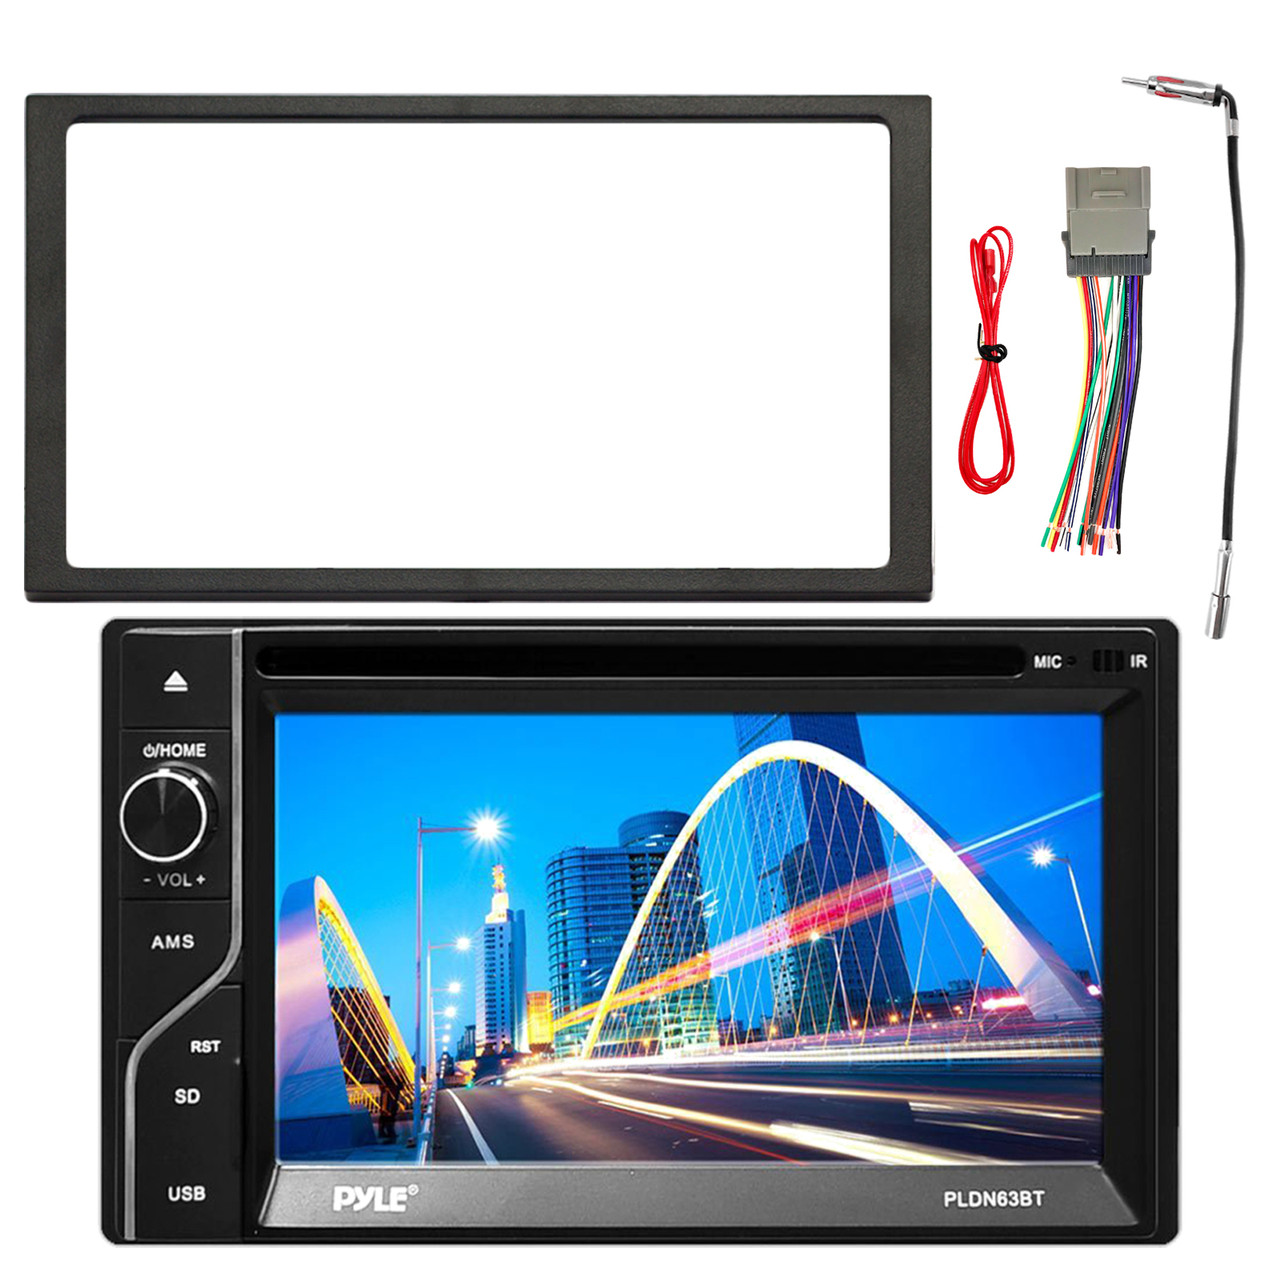 pyle 6 5\u0027\u0027 touch screen tft lcd monitor mp3 usb am fm bluetooth receiver, enrock double din installation dash kit, enrock stereo wiring harness, Car Audio Wiring